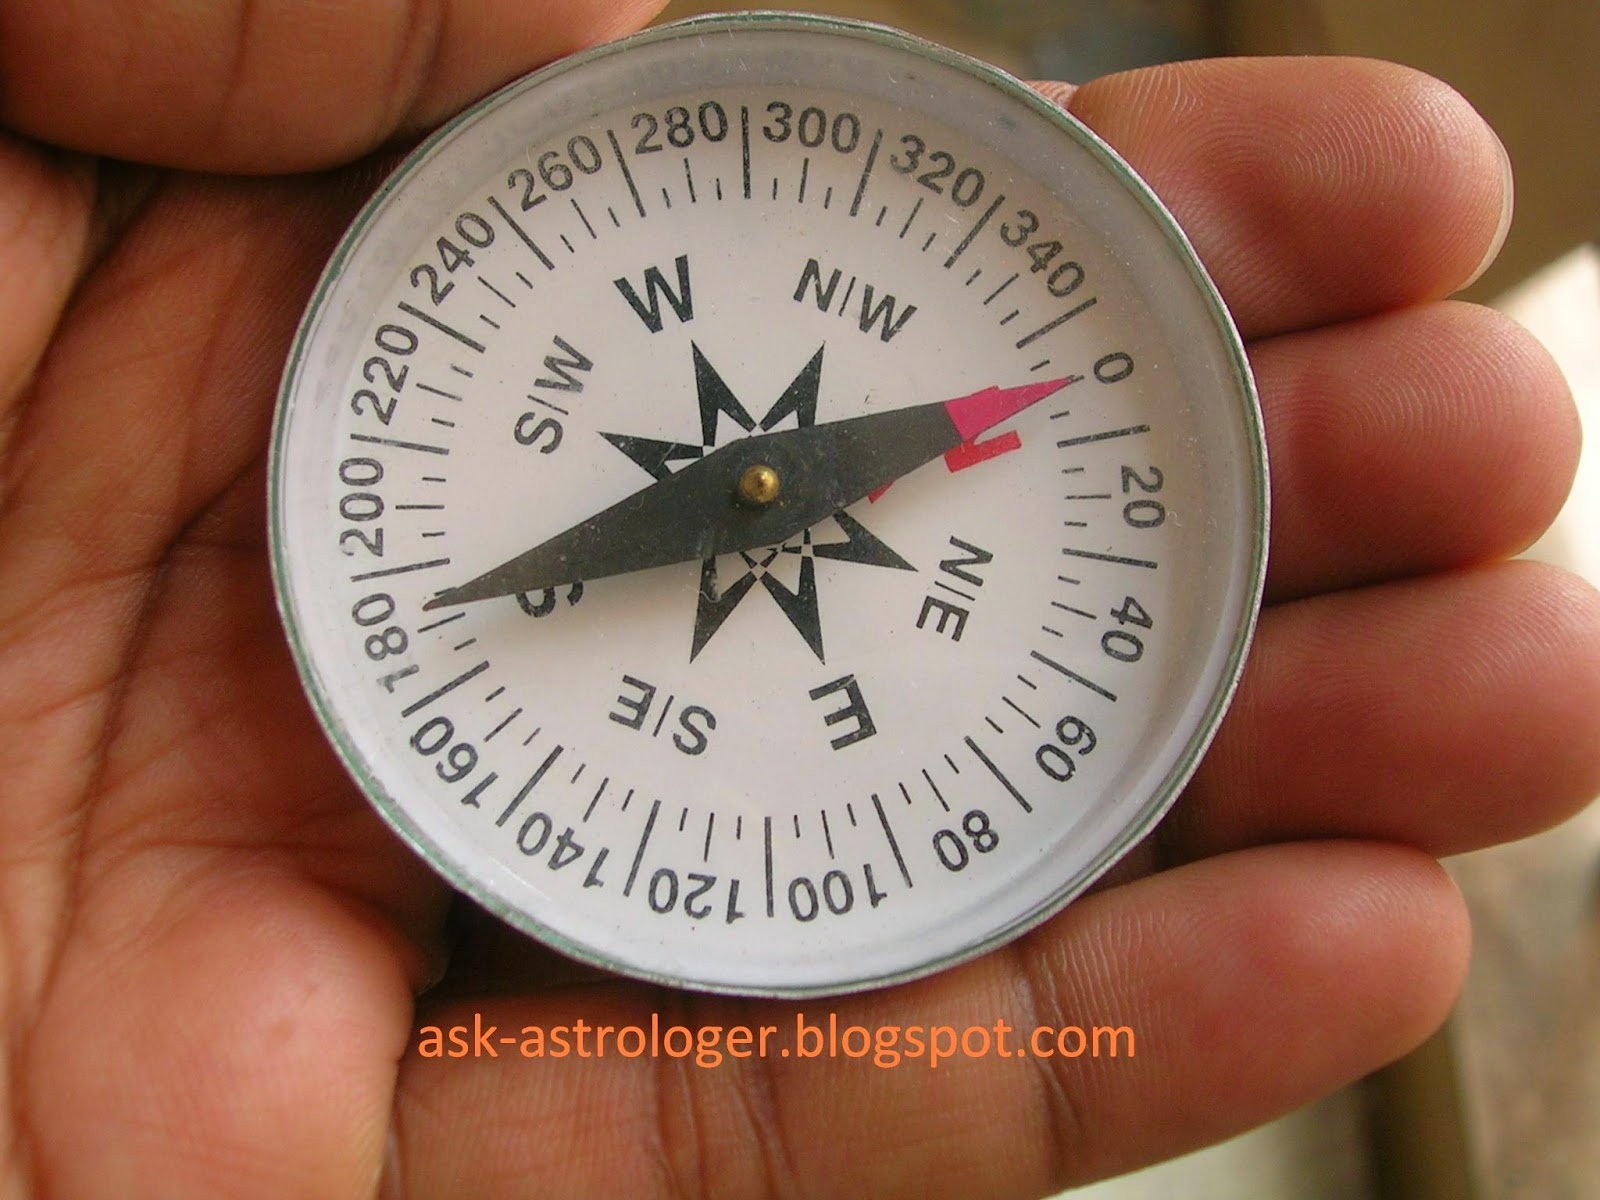 Why does a compass needle always point to the North?